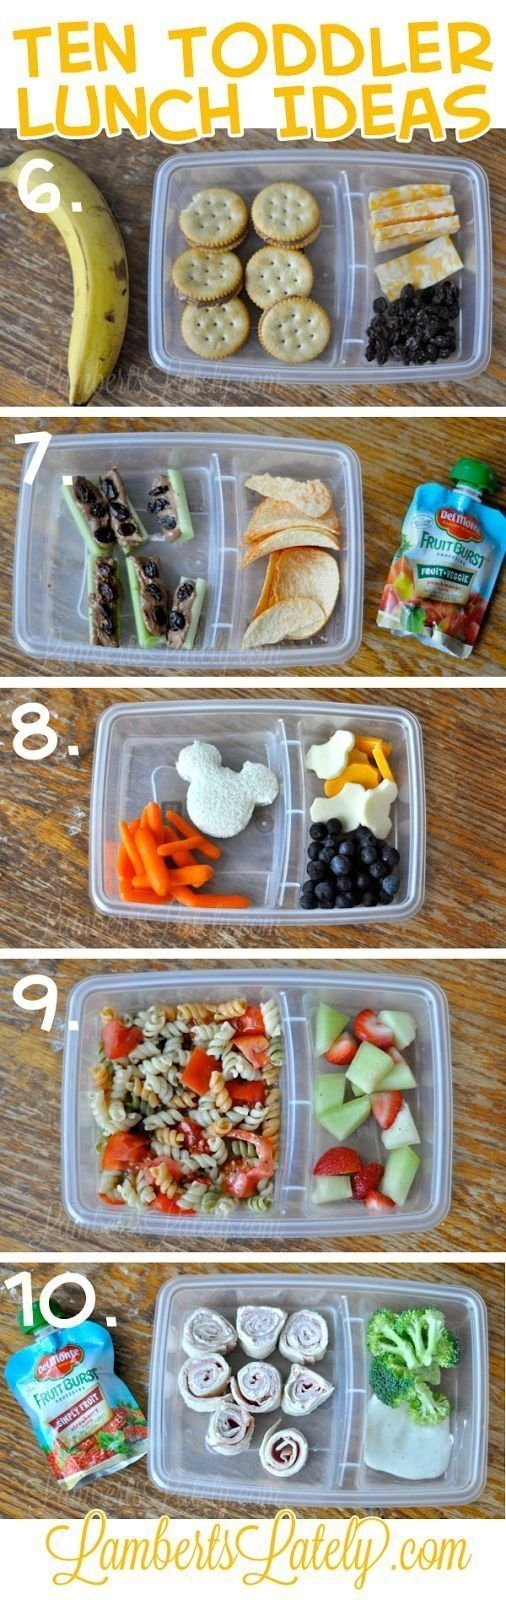 10 Cute Toddler Lunch Ideas For School ten quick and easy toddler lunch ideas collations et cuisiner 2020